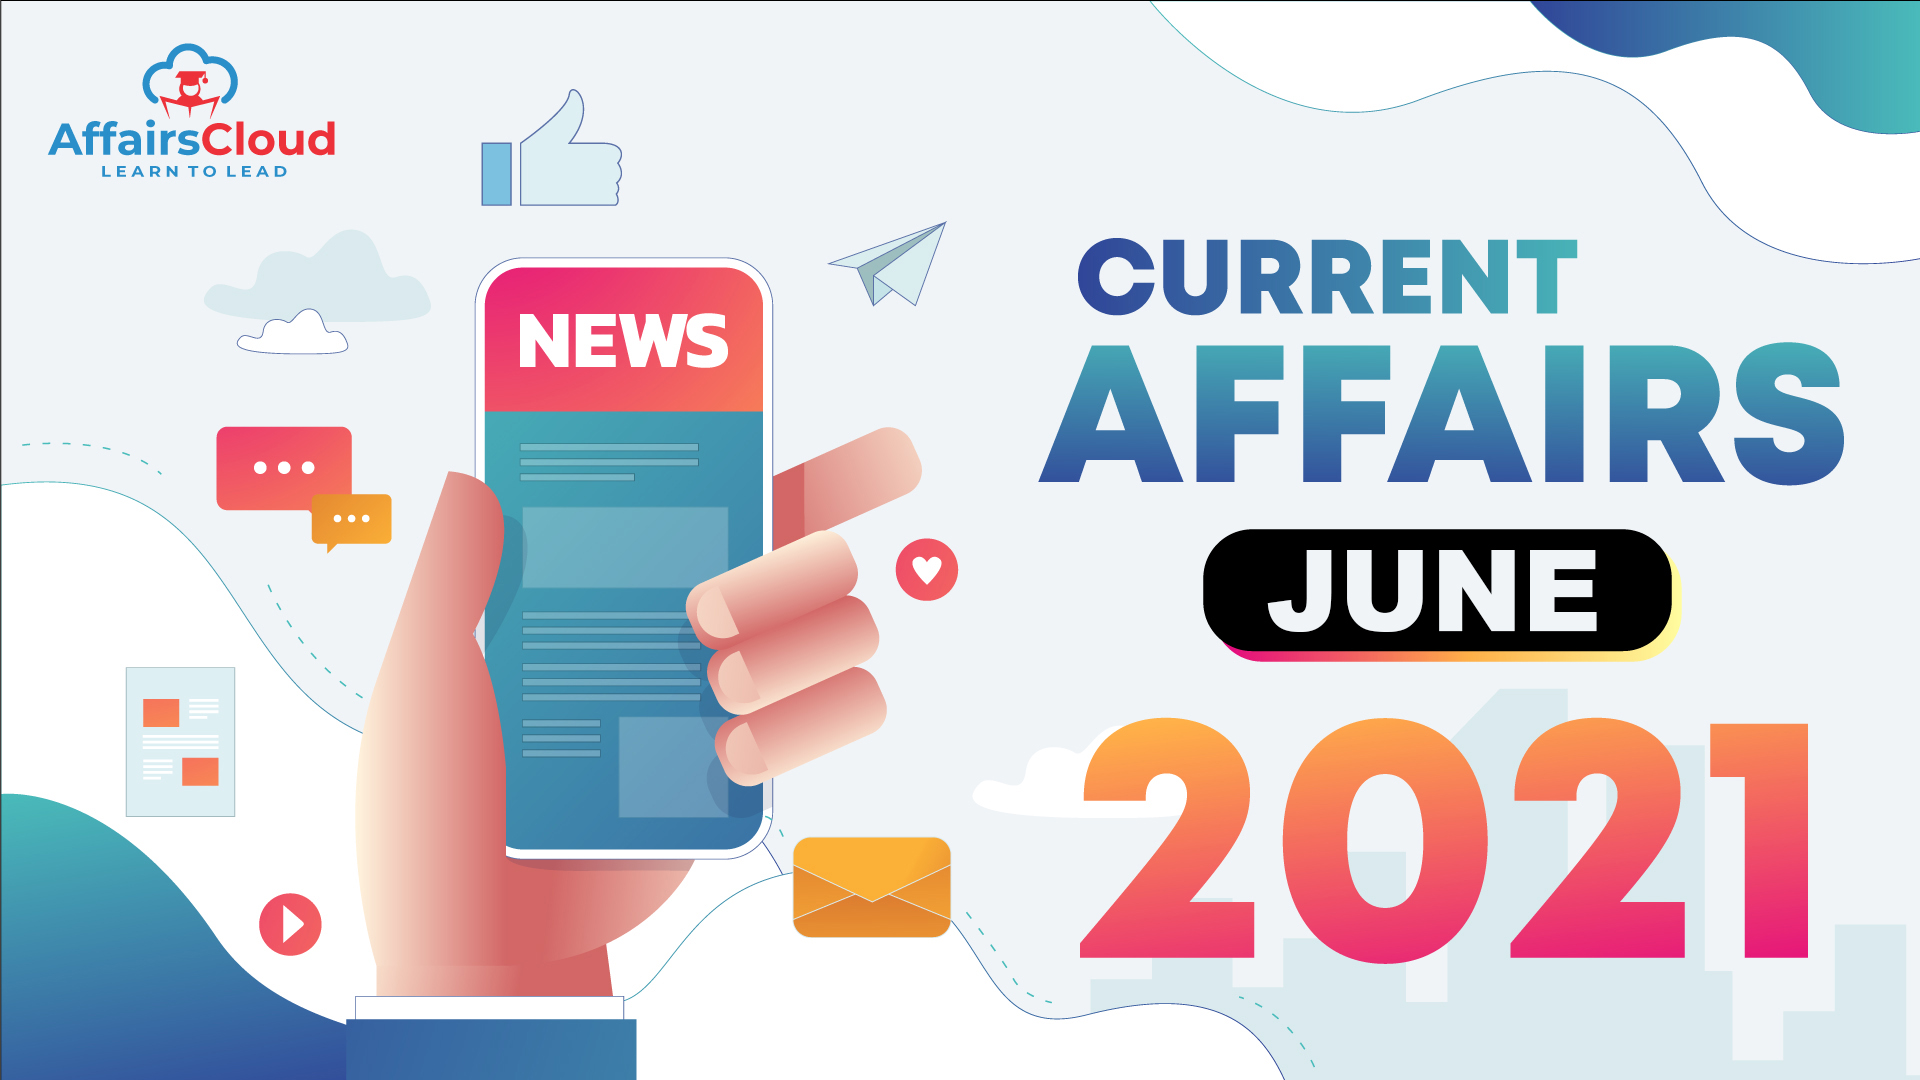 CURRENT-AFFAIRS-MONTHY June-2021